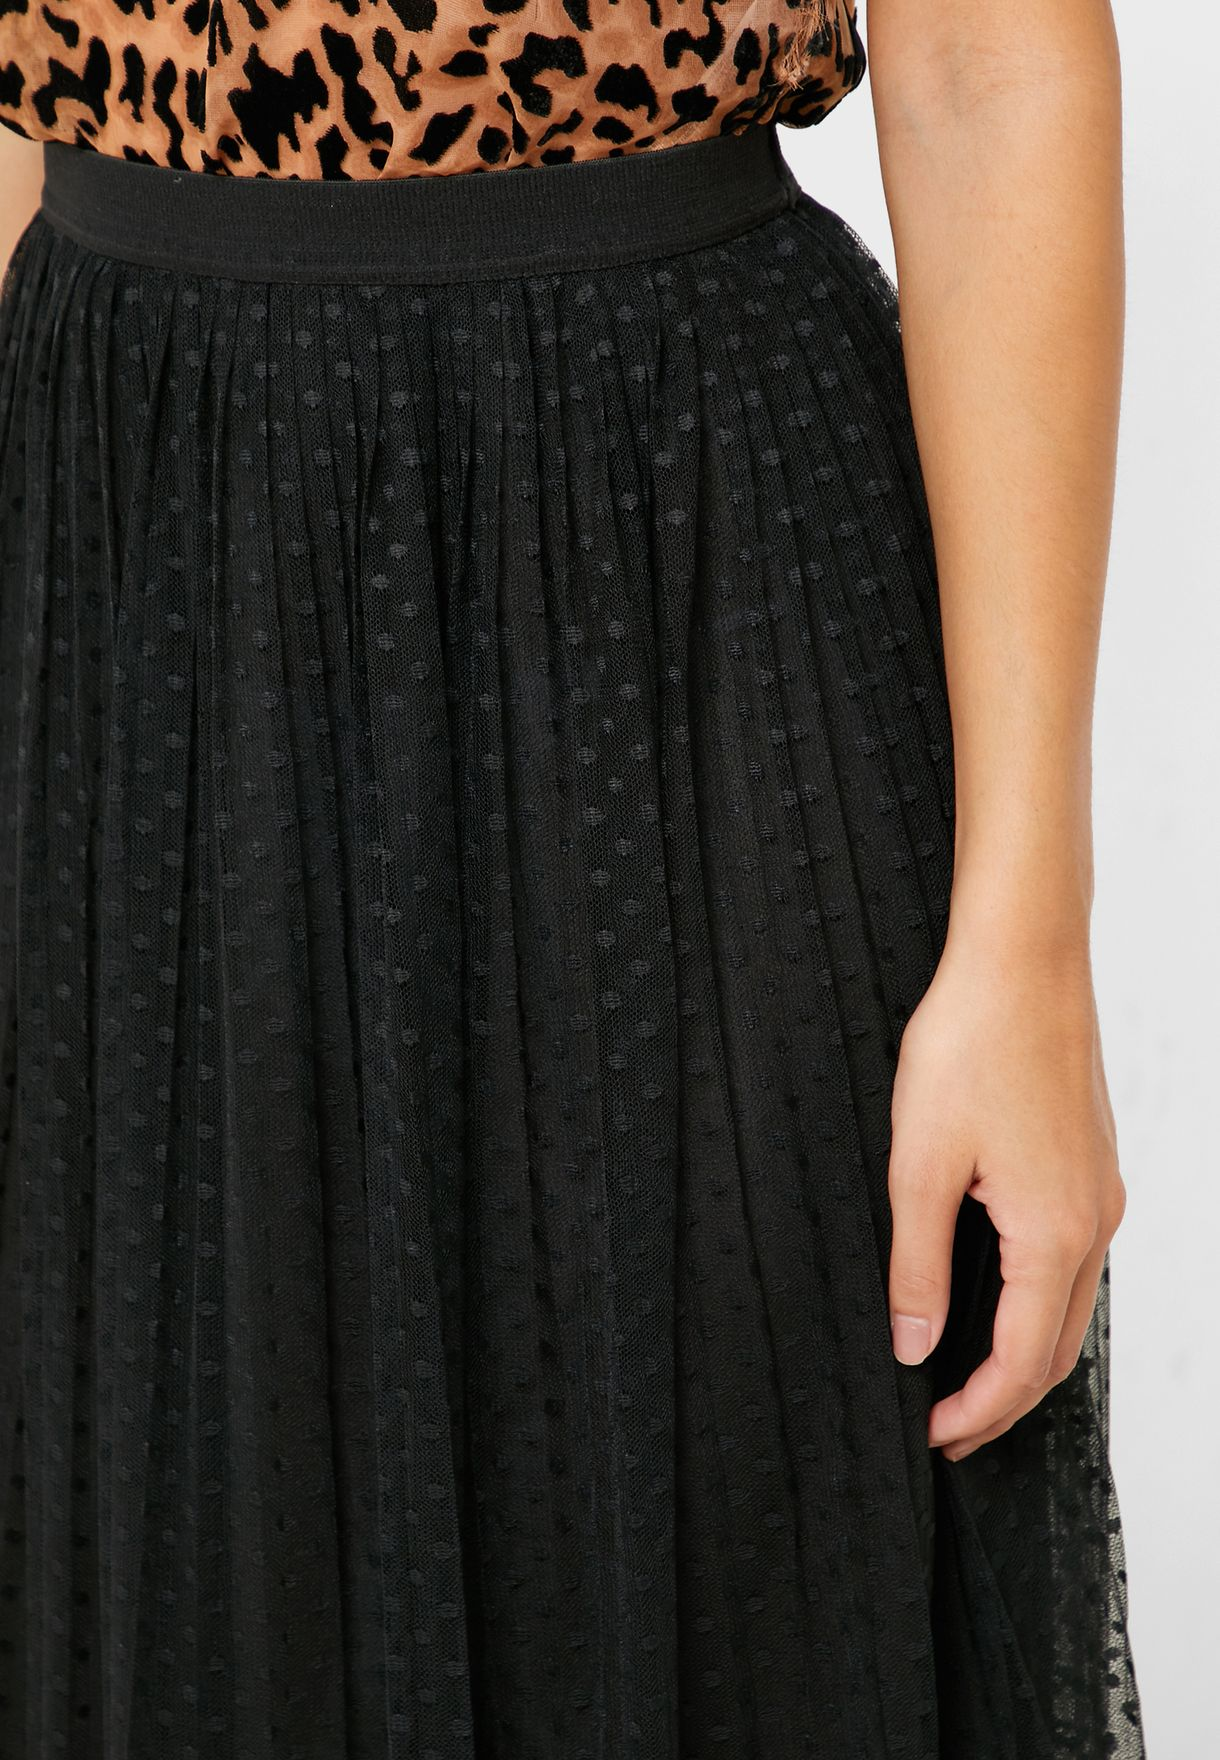 Polka Dot Sheer Overlay Skirt